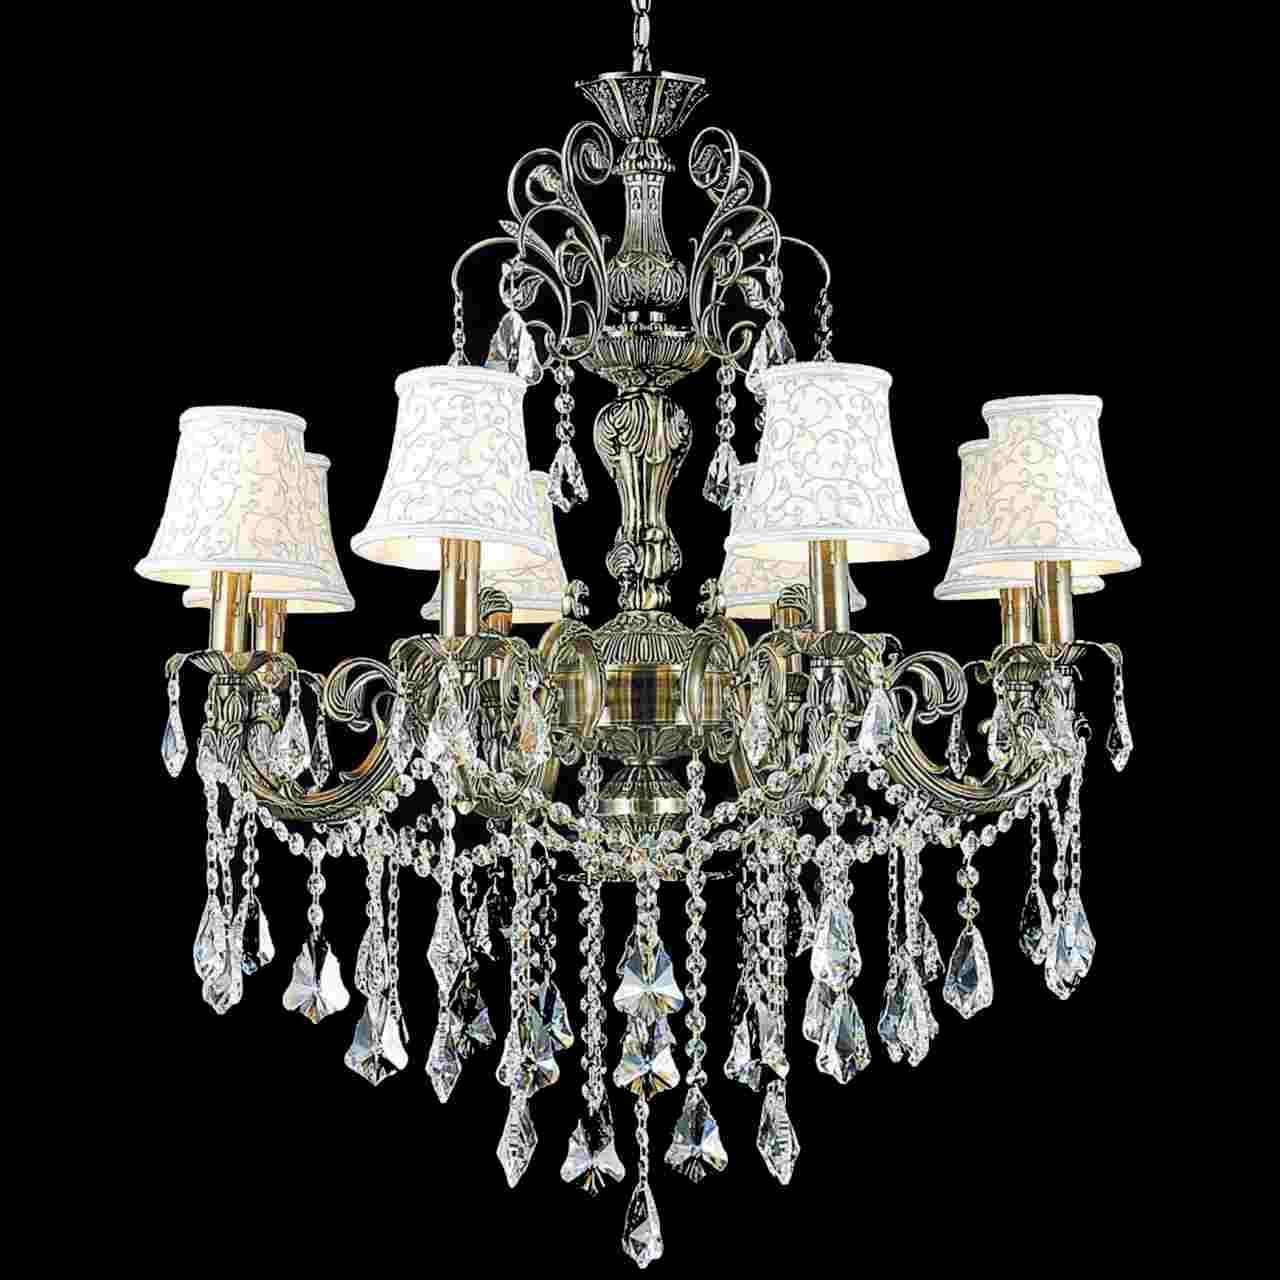 Best And Newest Traditional Chandeliers Intended For Brizzo Lighting Stores (View 6 of 15)